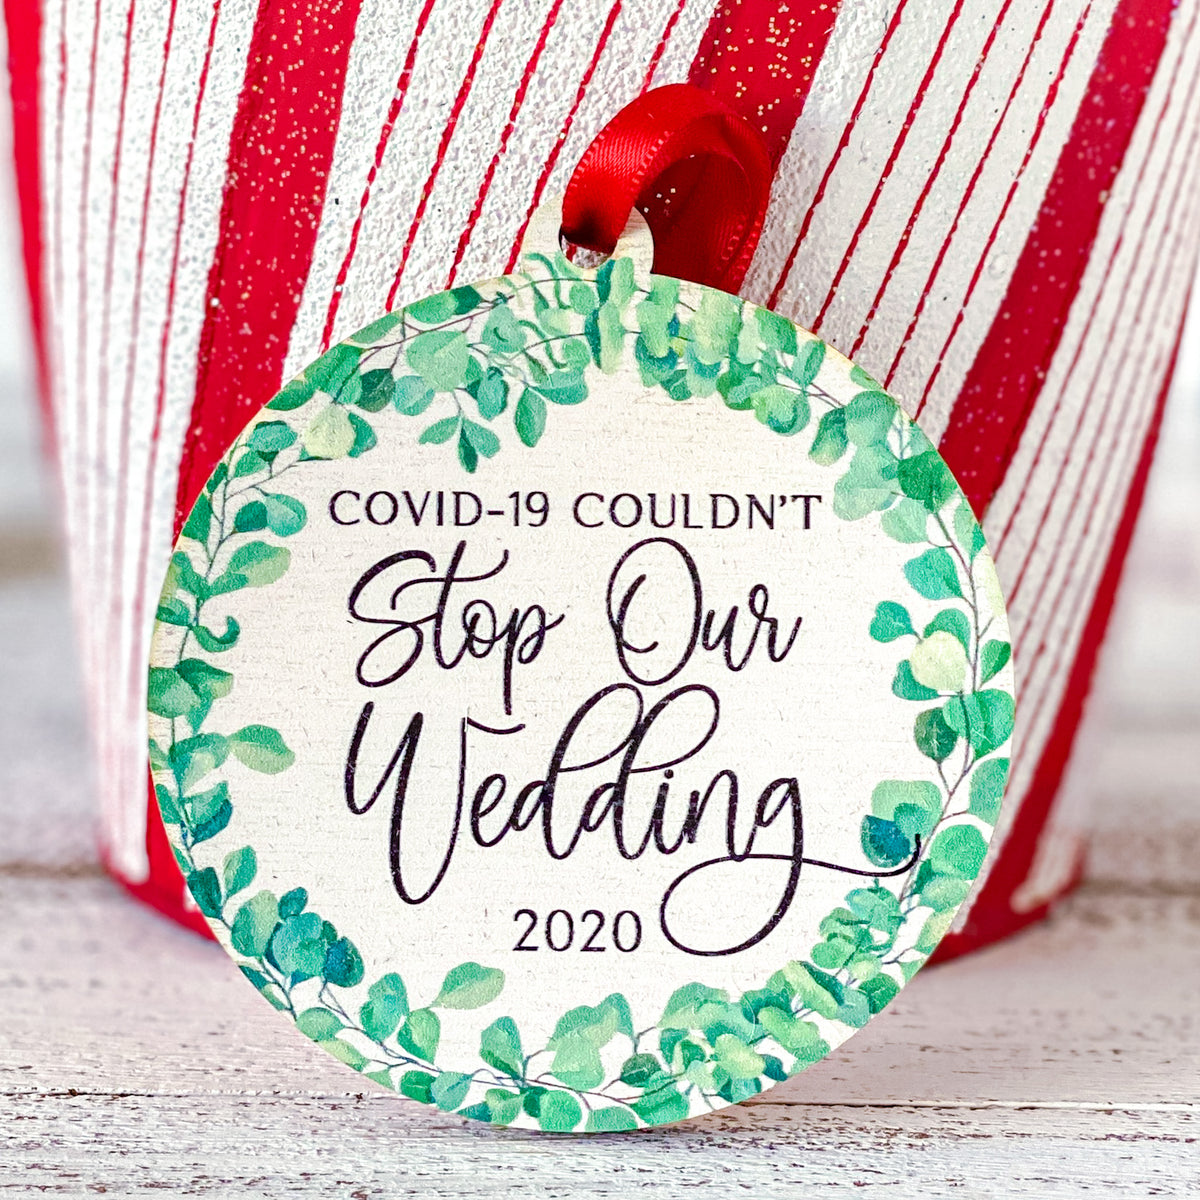 COVID-19 Couldn't Stop Our Wedding 2020. Round Ornament, Greenery Wreath around Text.